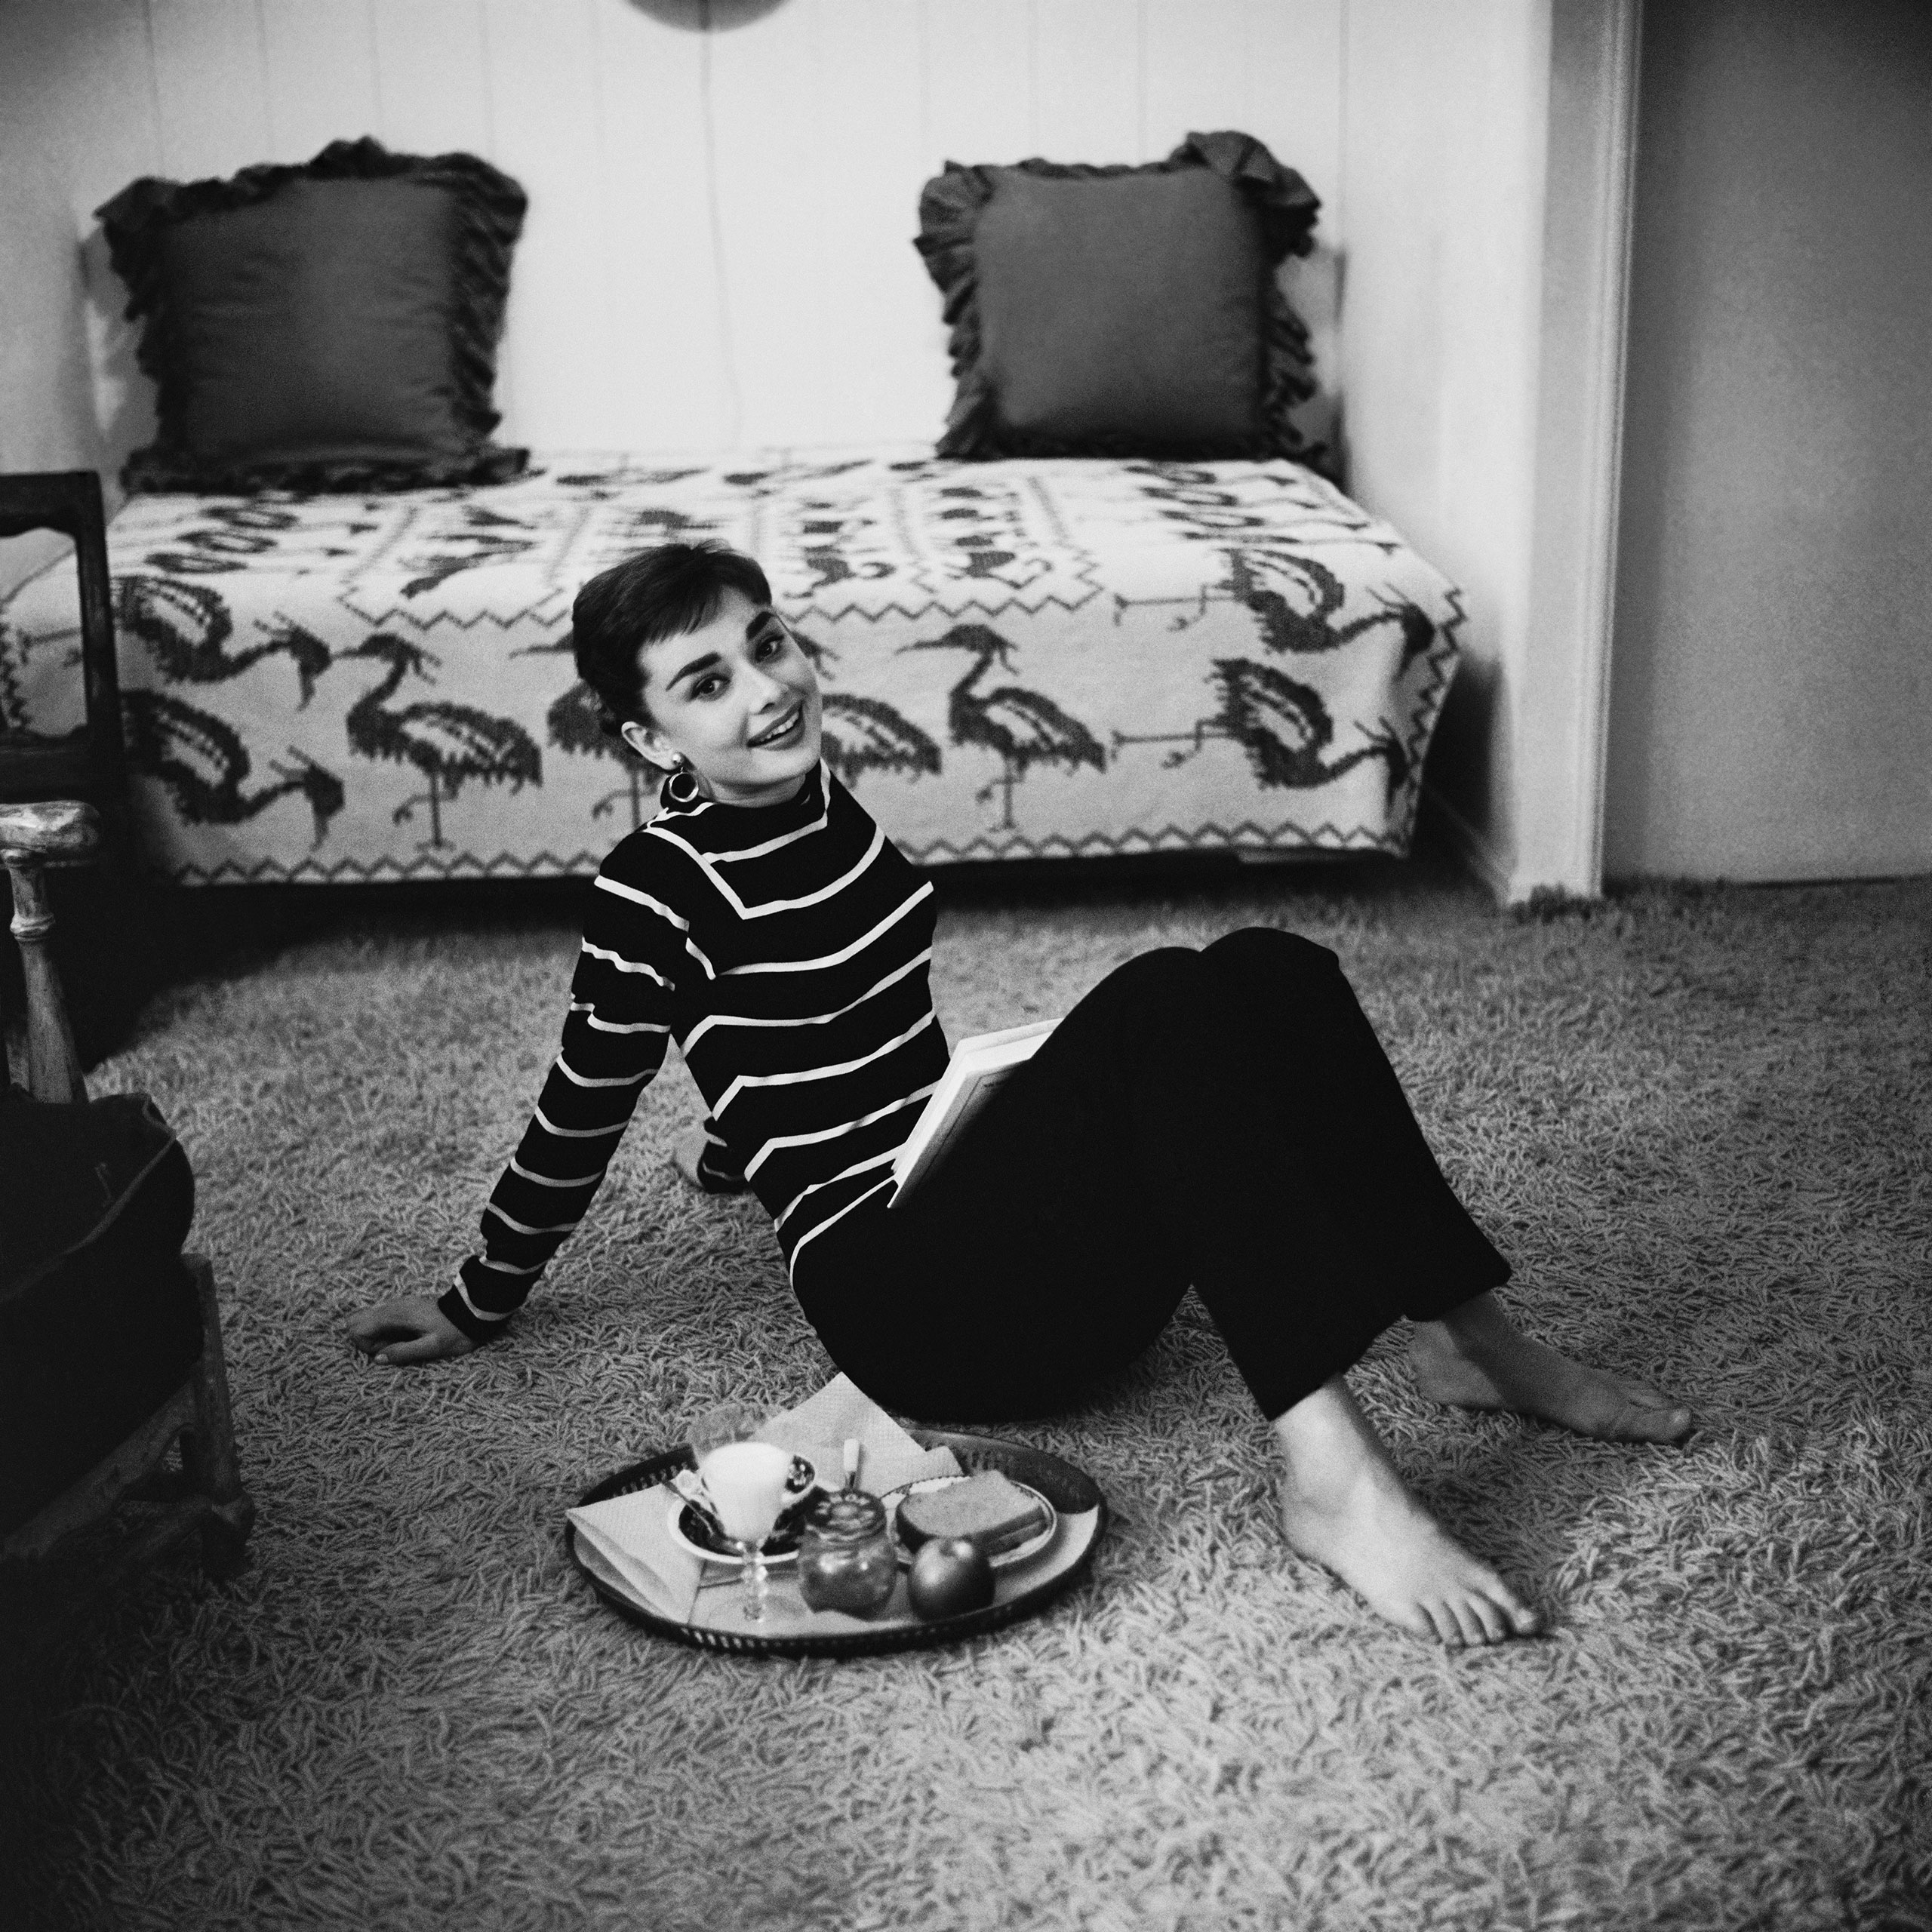 audrey-hepburn-eating-breakfast-before-going-to-the-paramount-studio-where-she-is-filming-22sabrina22-photo-by-mark-shaw-december-1953.jpg